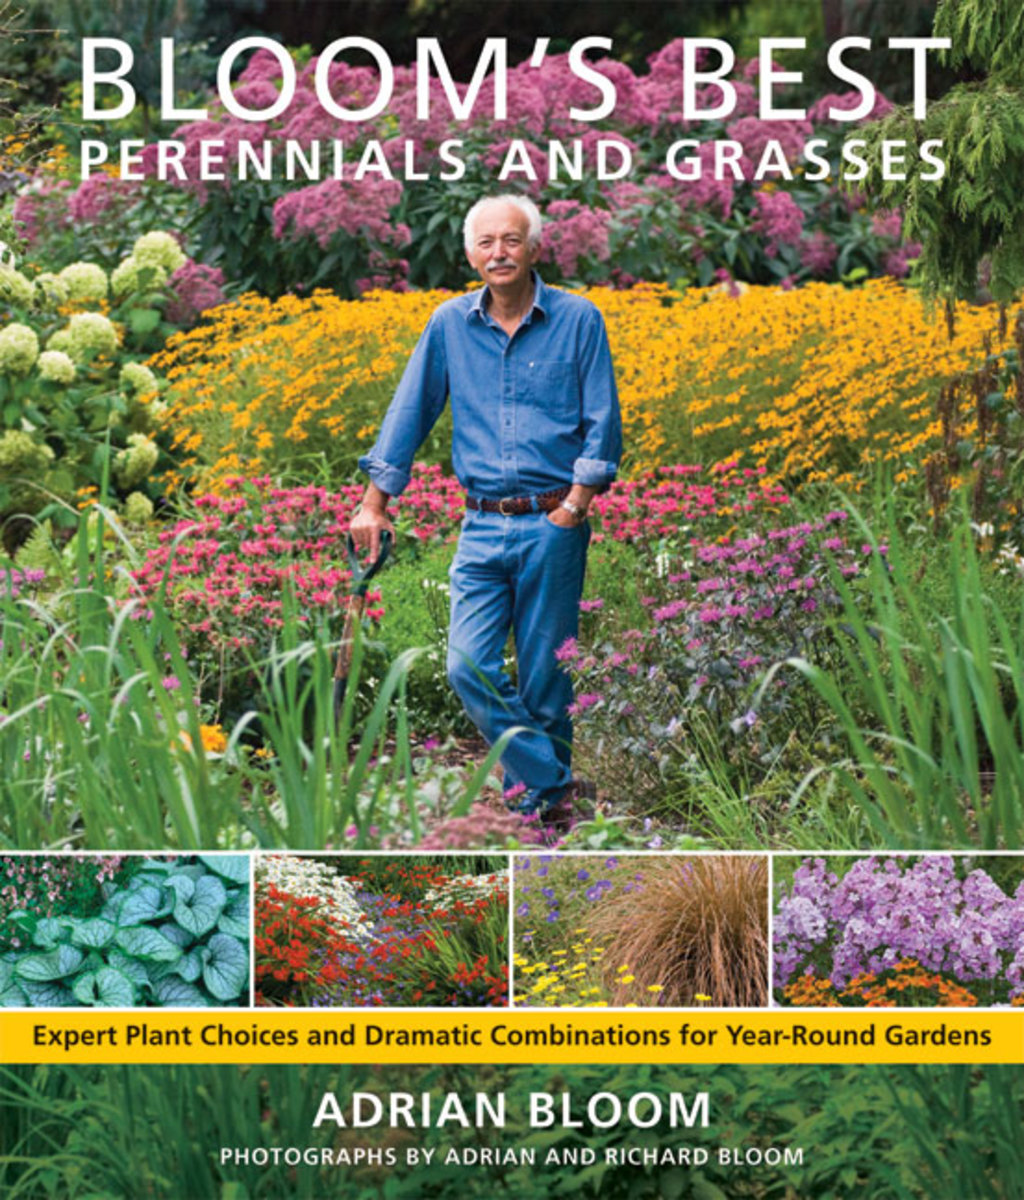 Bloom's Best Perennials and Grasses